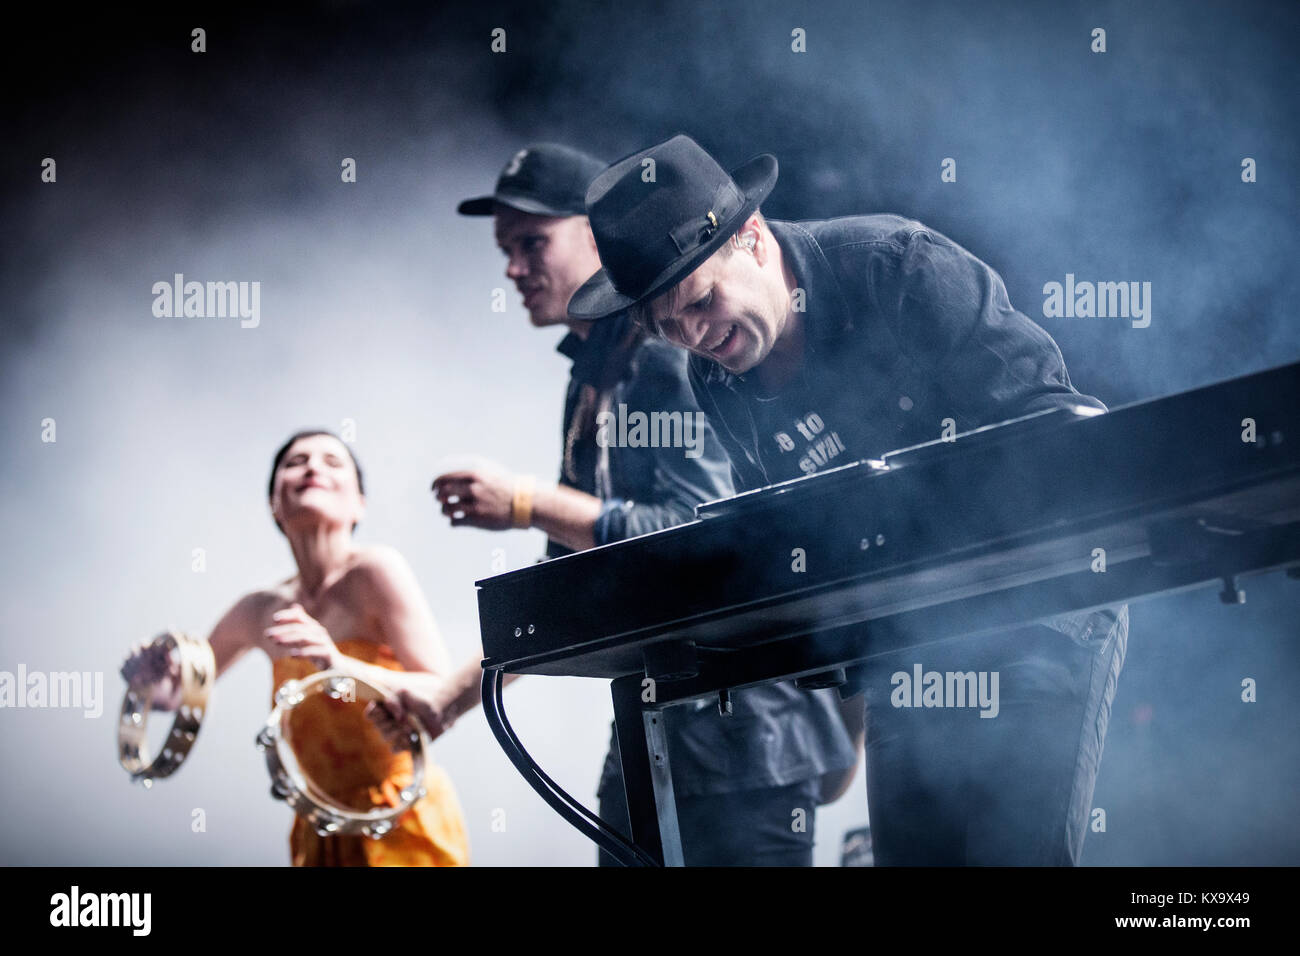 The Danish DJ, producer and hit-maker Anders Trentemøller performs a